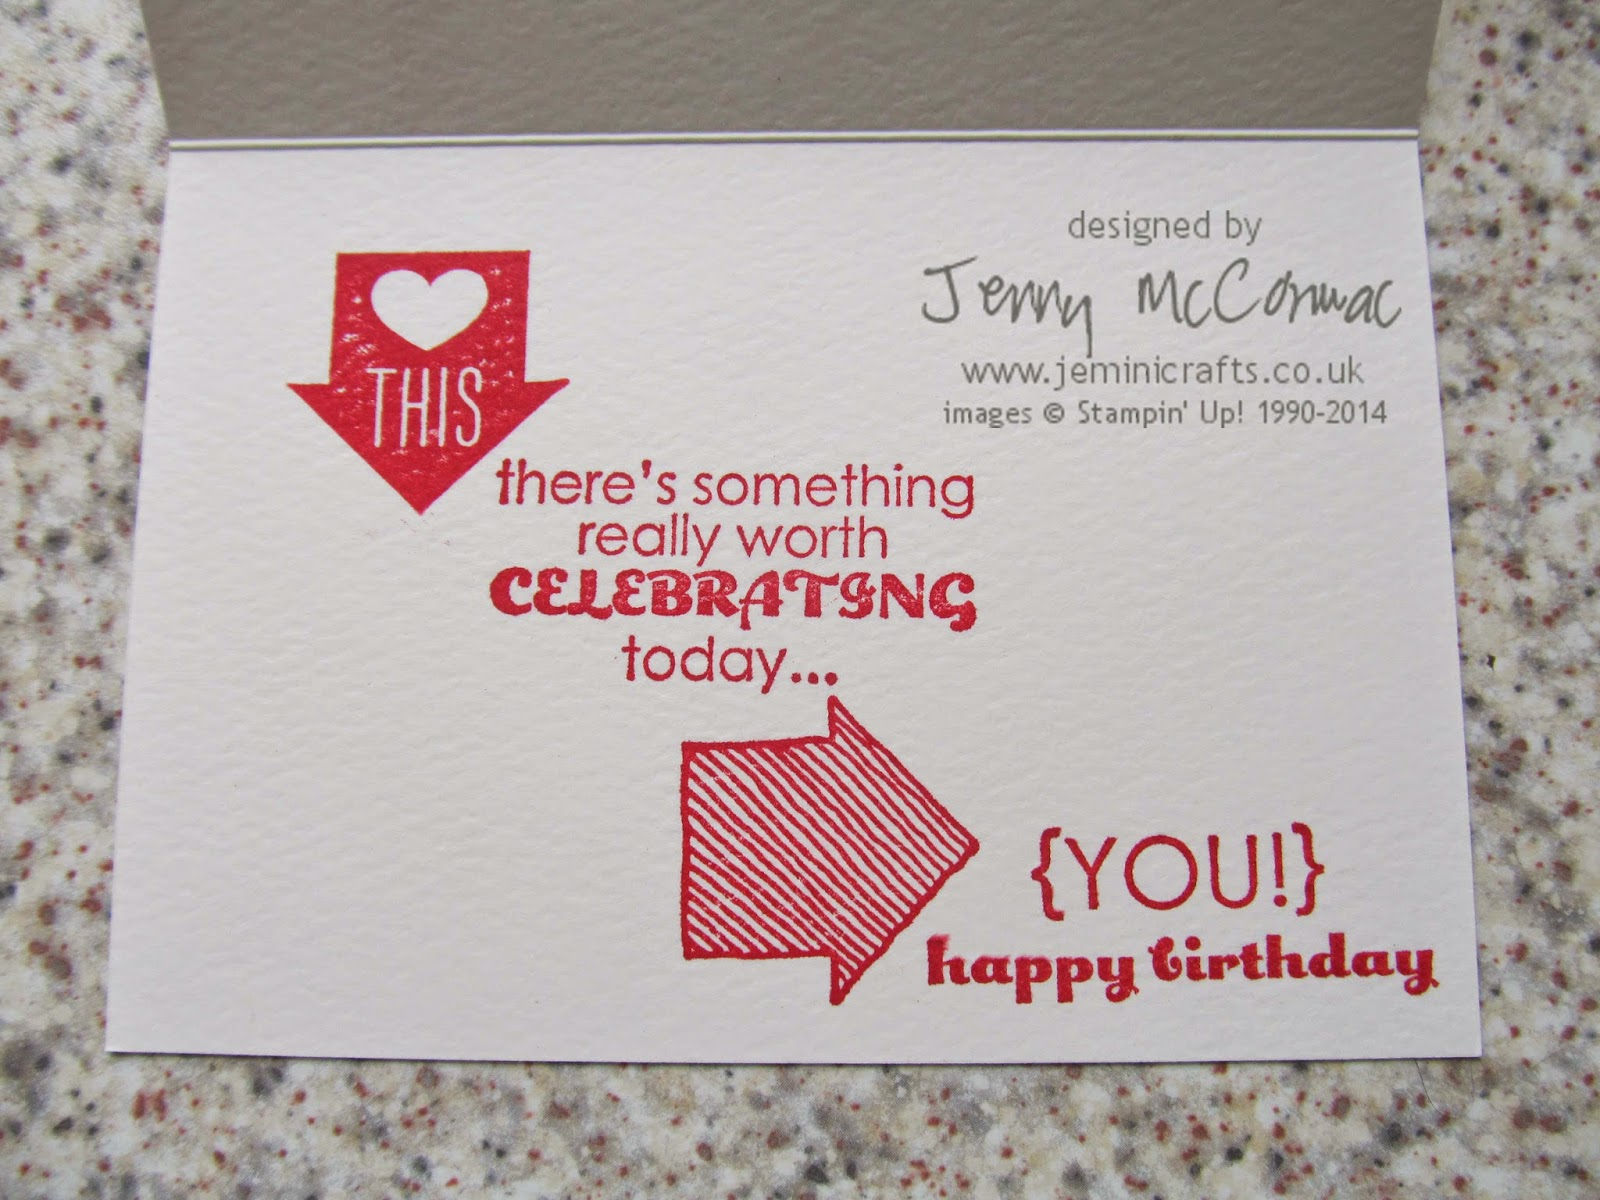 What's Up Birthday card using Stampin' Up! products Jemini Crafts